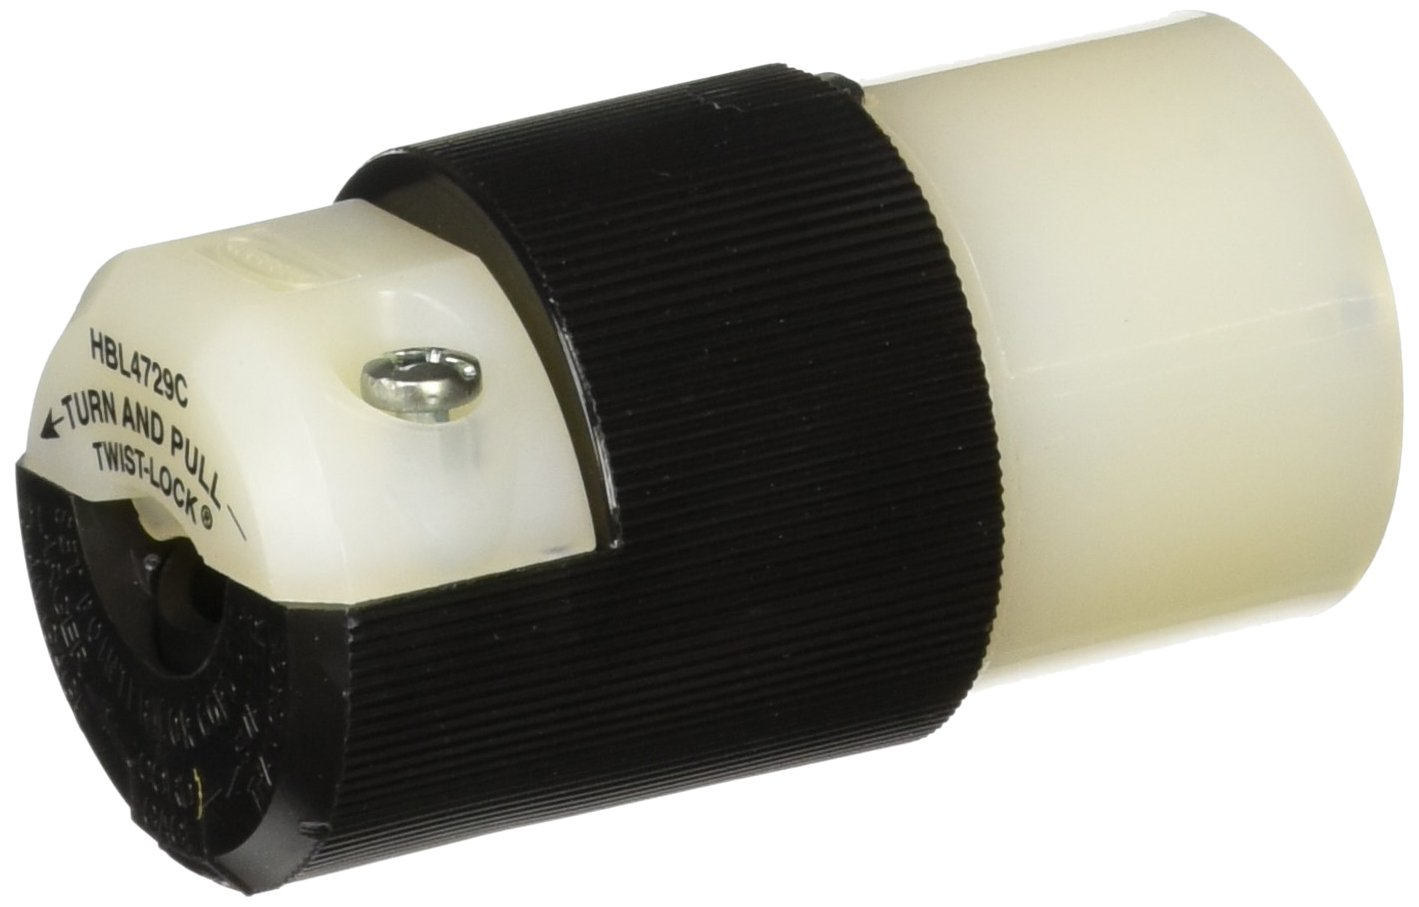 Hubbell HBL4729C Locking Connector, 15 amp, 125V, L5-15R, Black/White(Pack of 10)